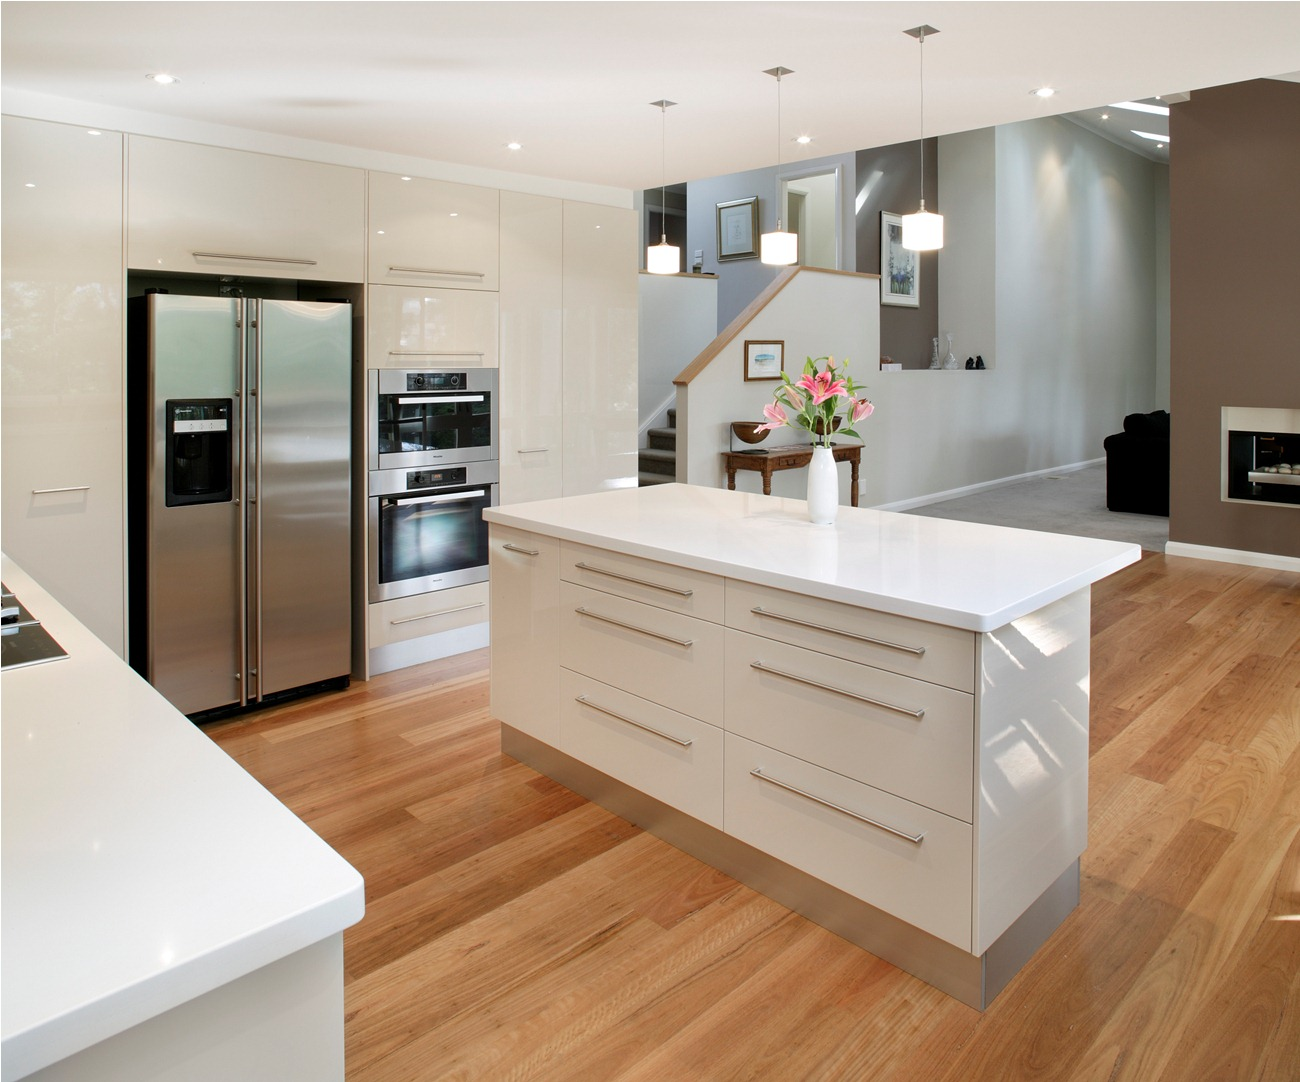 Beyond kitchens kitchen cupboards cape town prices for Kitchen ideas photos